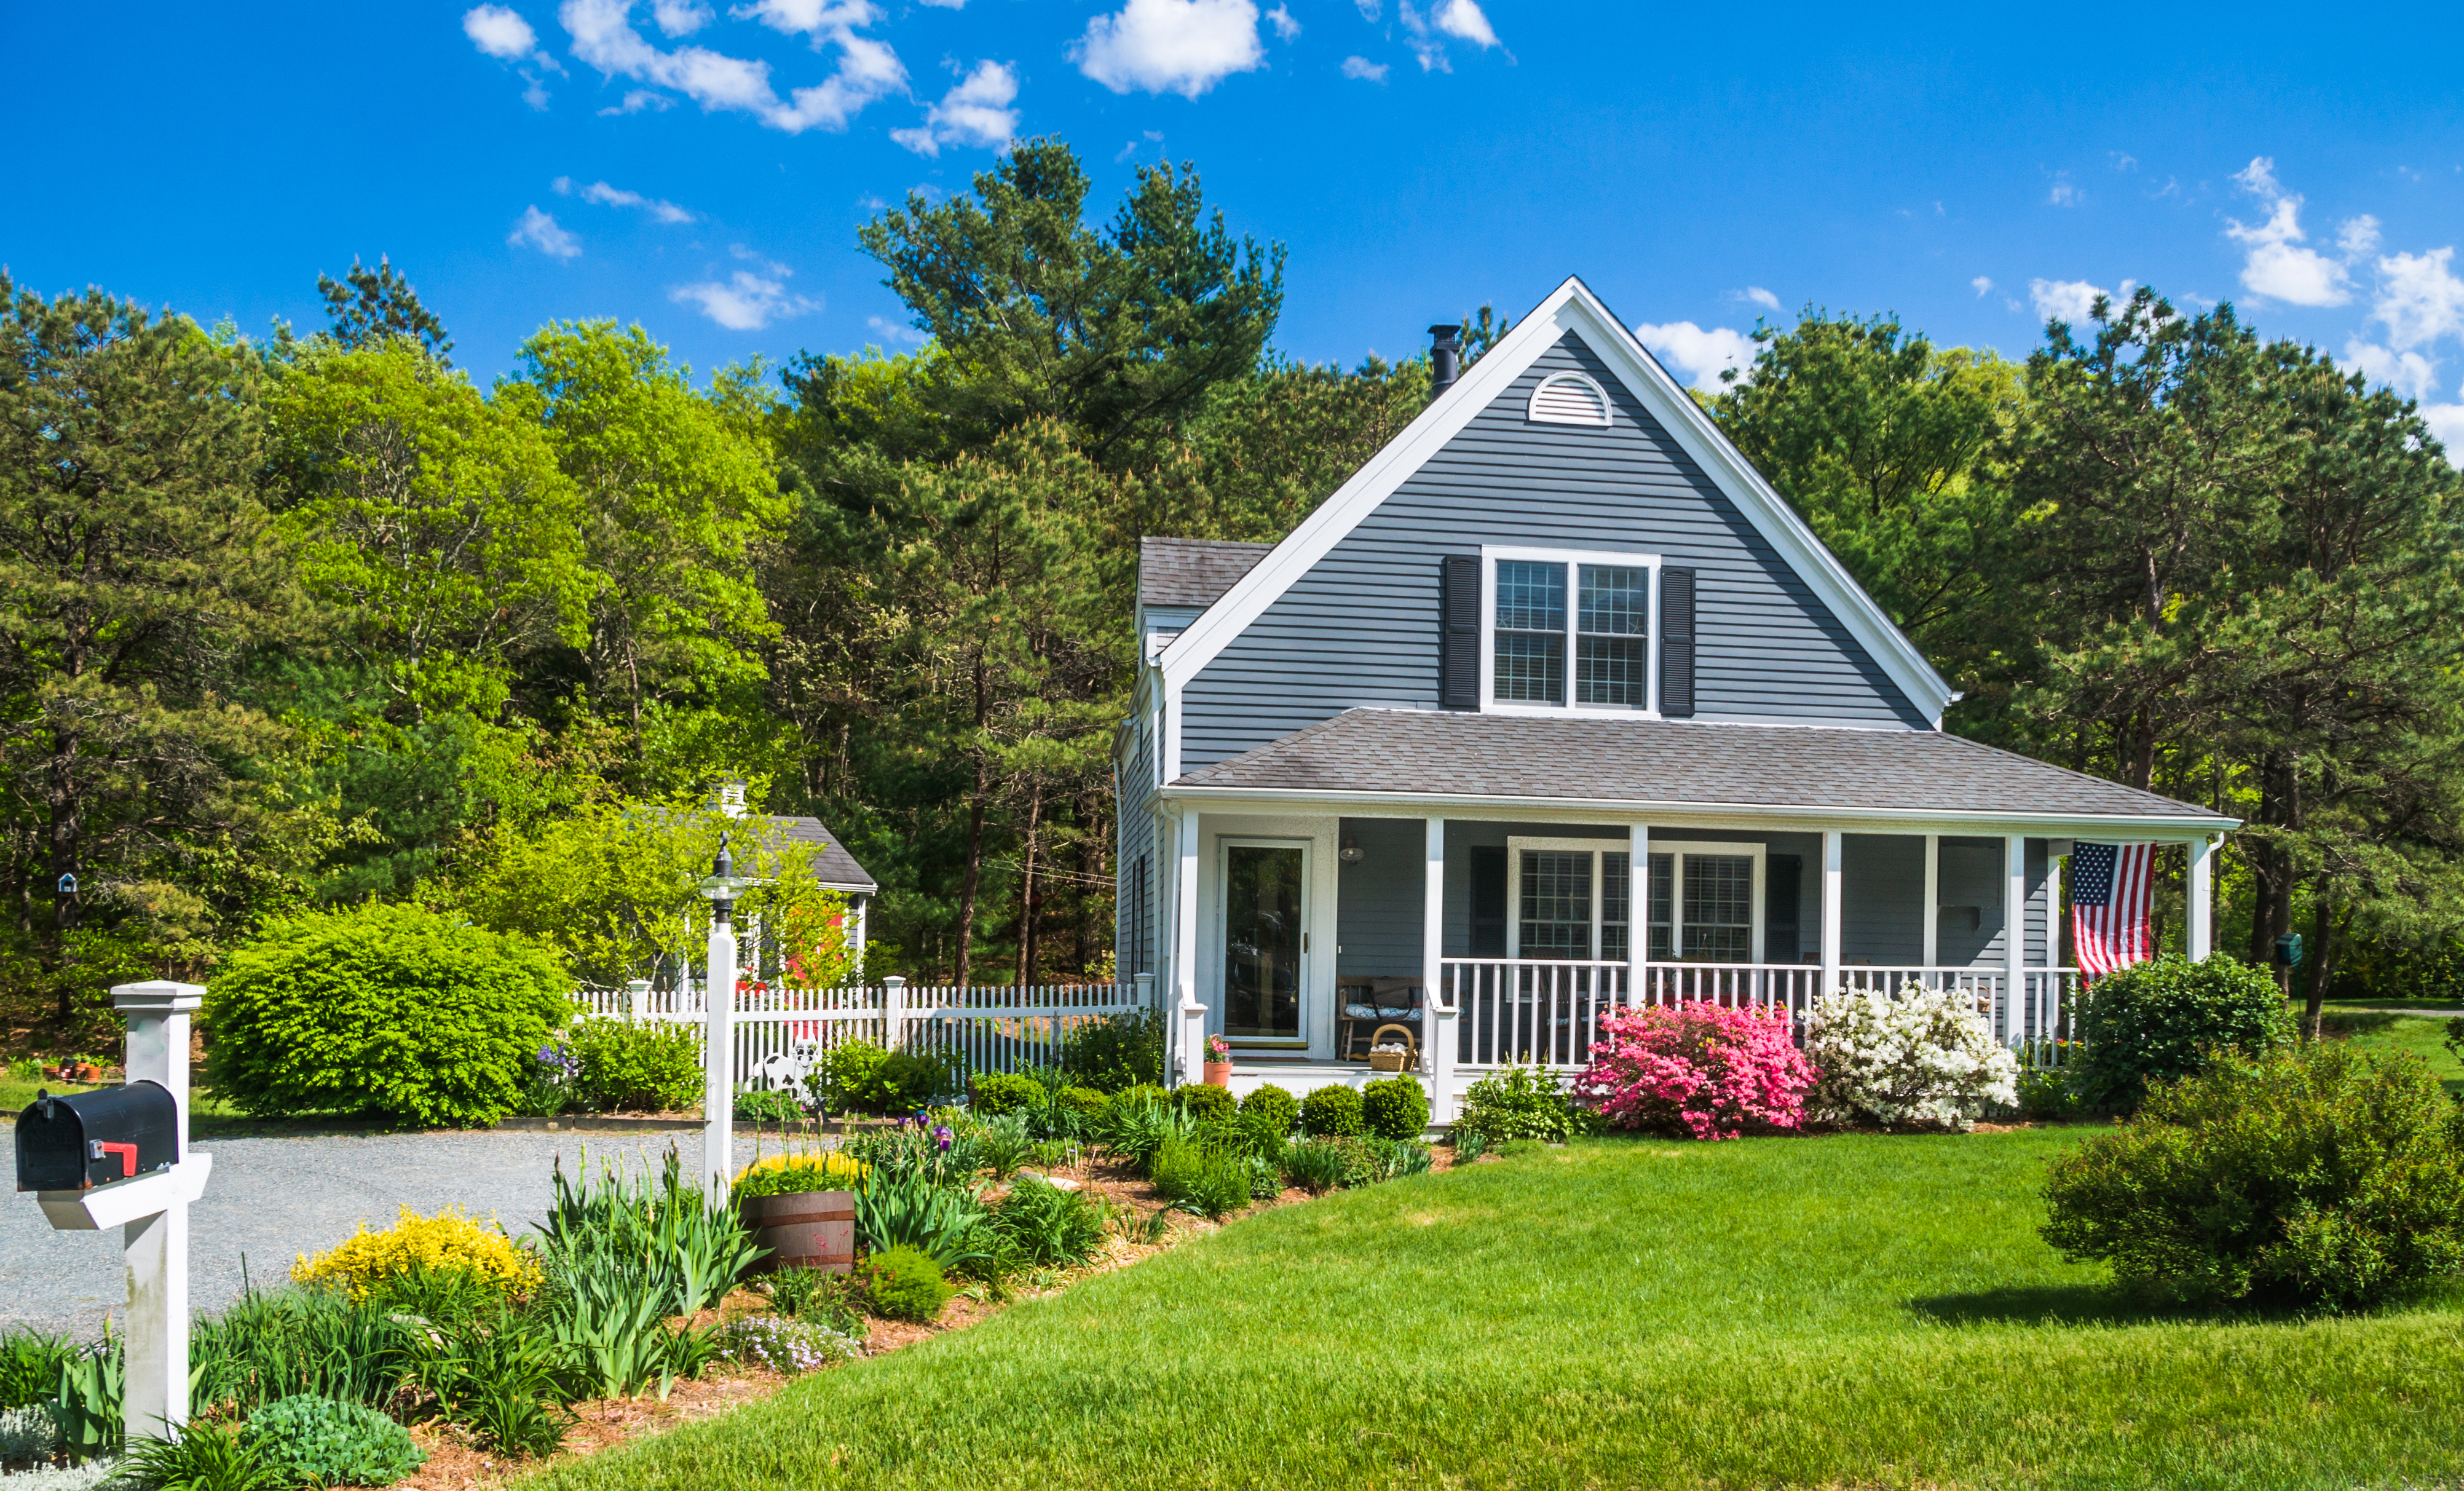 What Are The Pros And Cons Of A Usda Loan